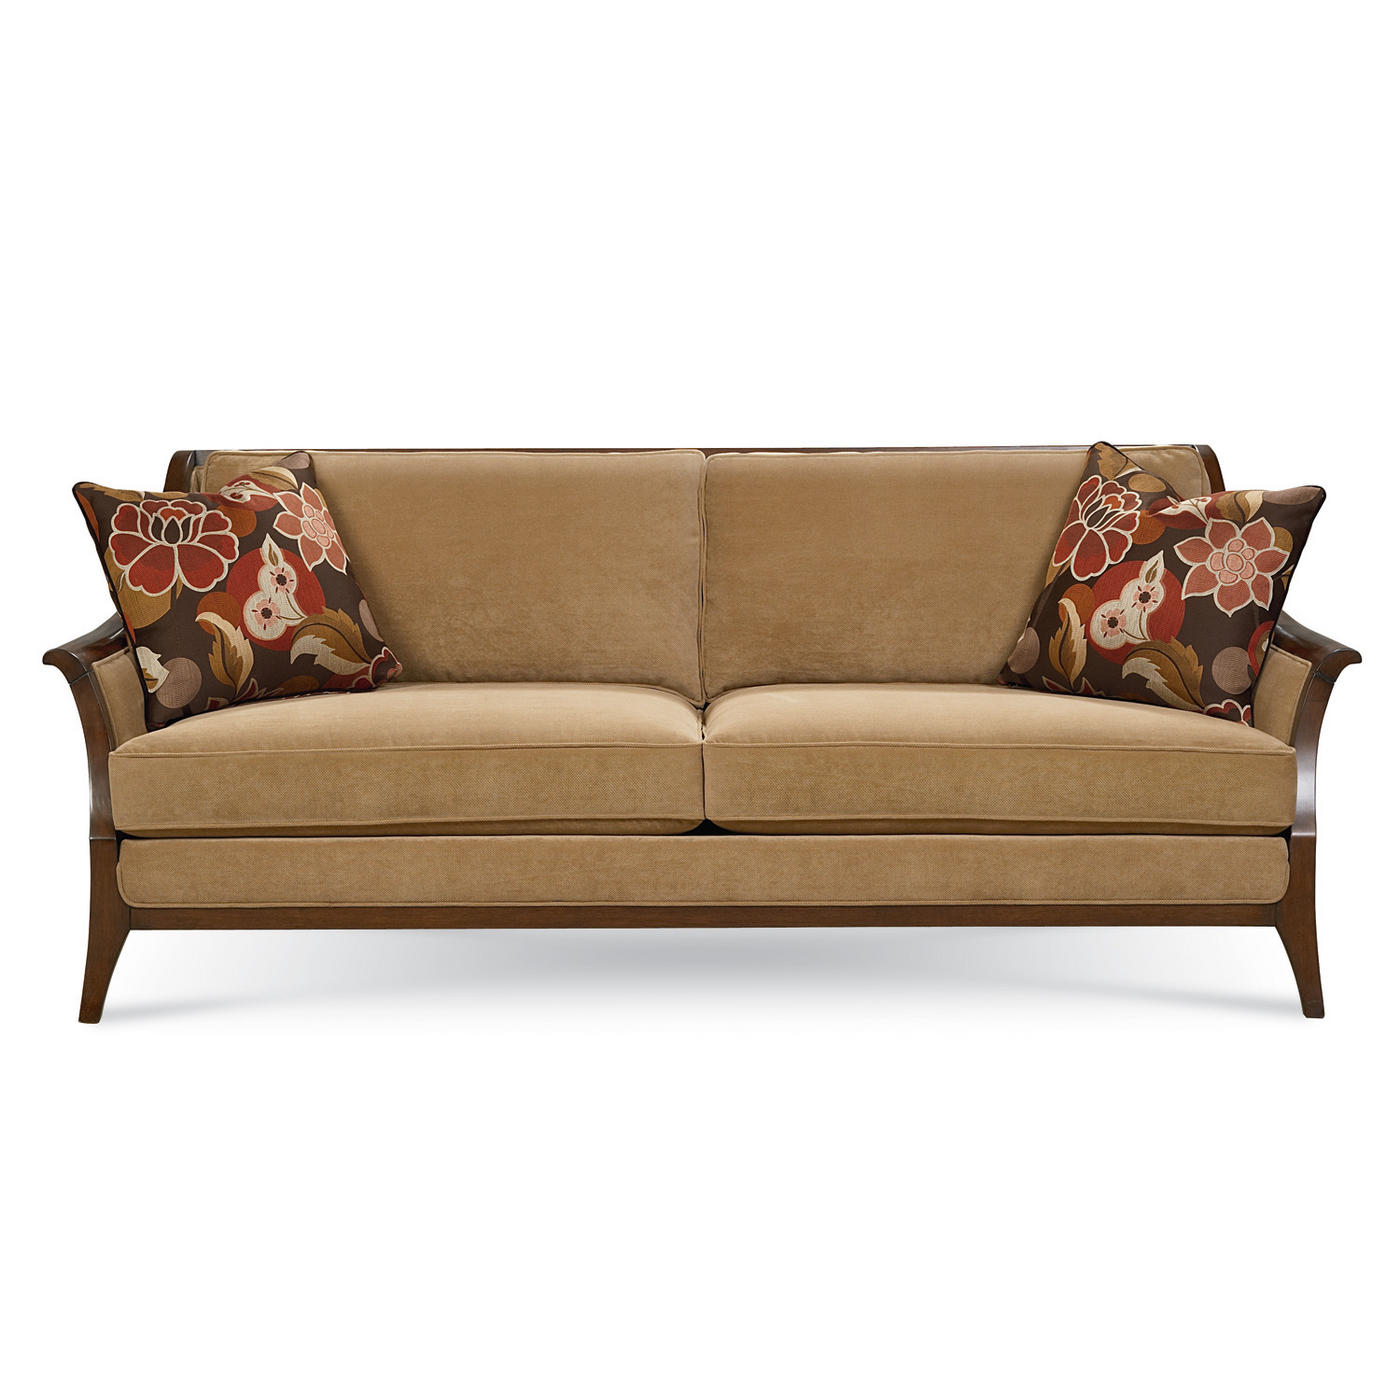 wooden sofa design gallery modern sofas london schnadig international upholstery ella wood by